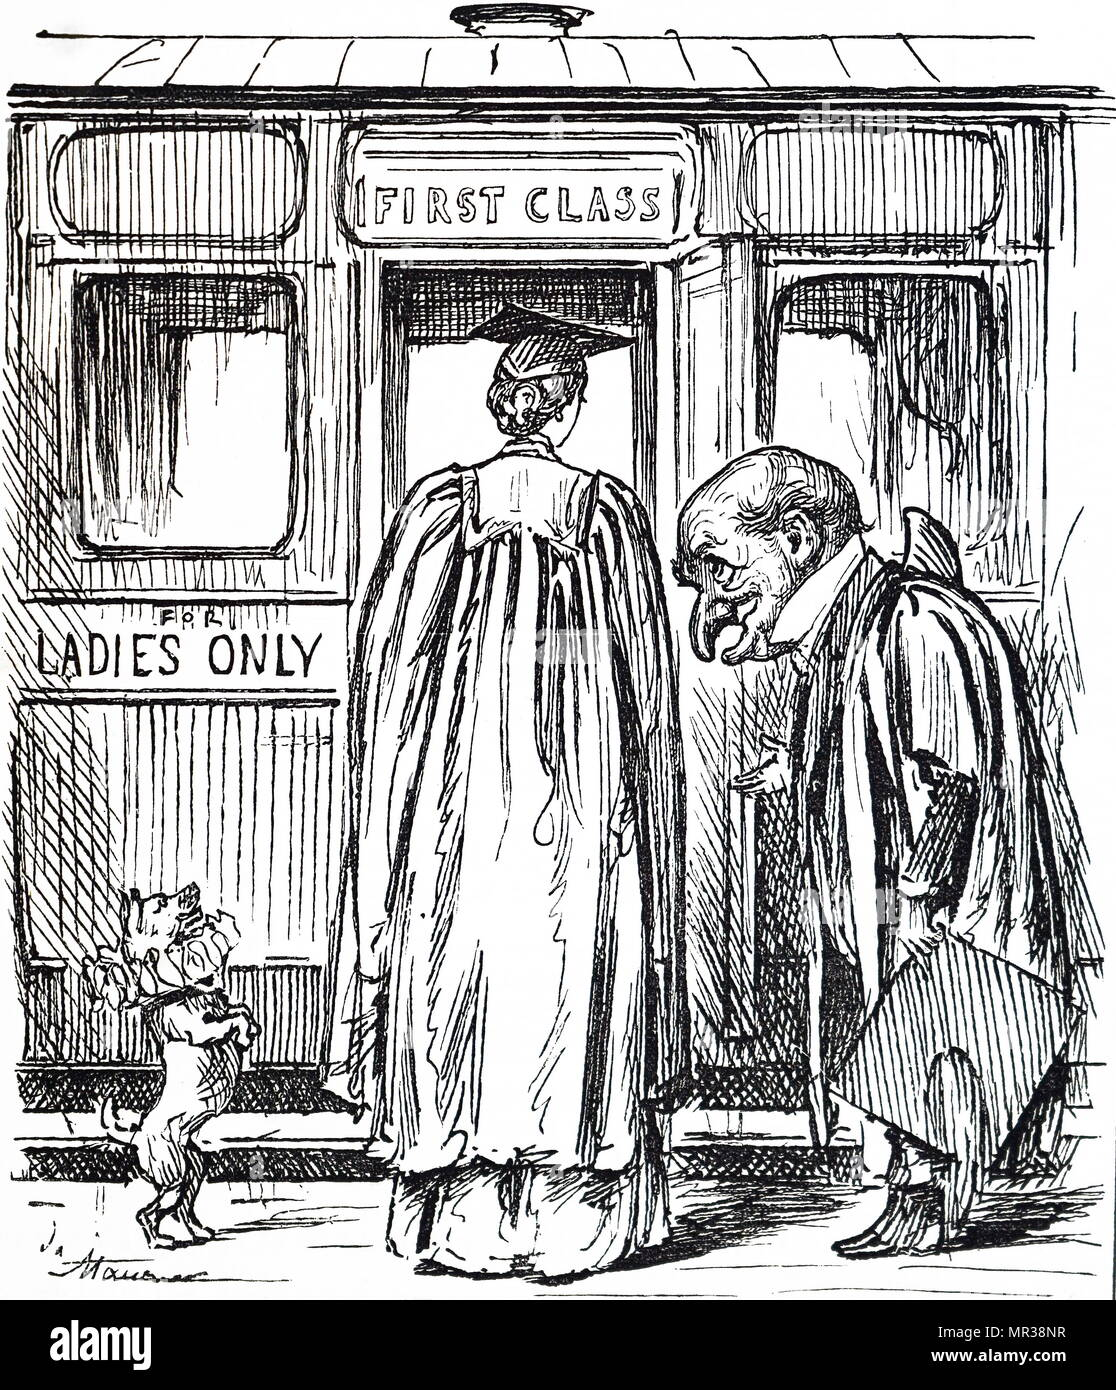 Cartoon depicting Agnata Frances Ramsay, the first woman to pass with First Class honours from Cambridge University, although she did not receive her degree as women were not given them at the time. Illustrated by George du Maurier (1834-1896) a Franco-British cartoonist and author. Dated 19th century Stock Photo